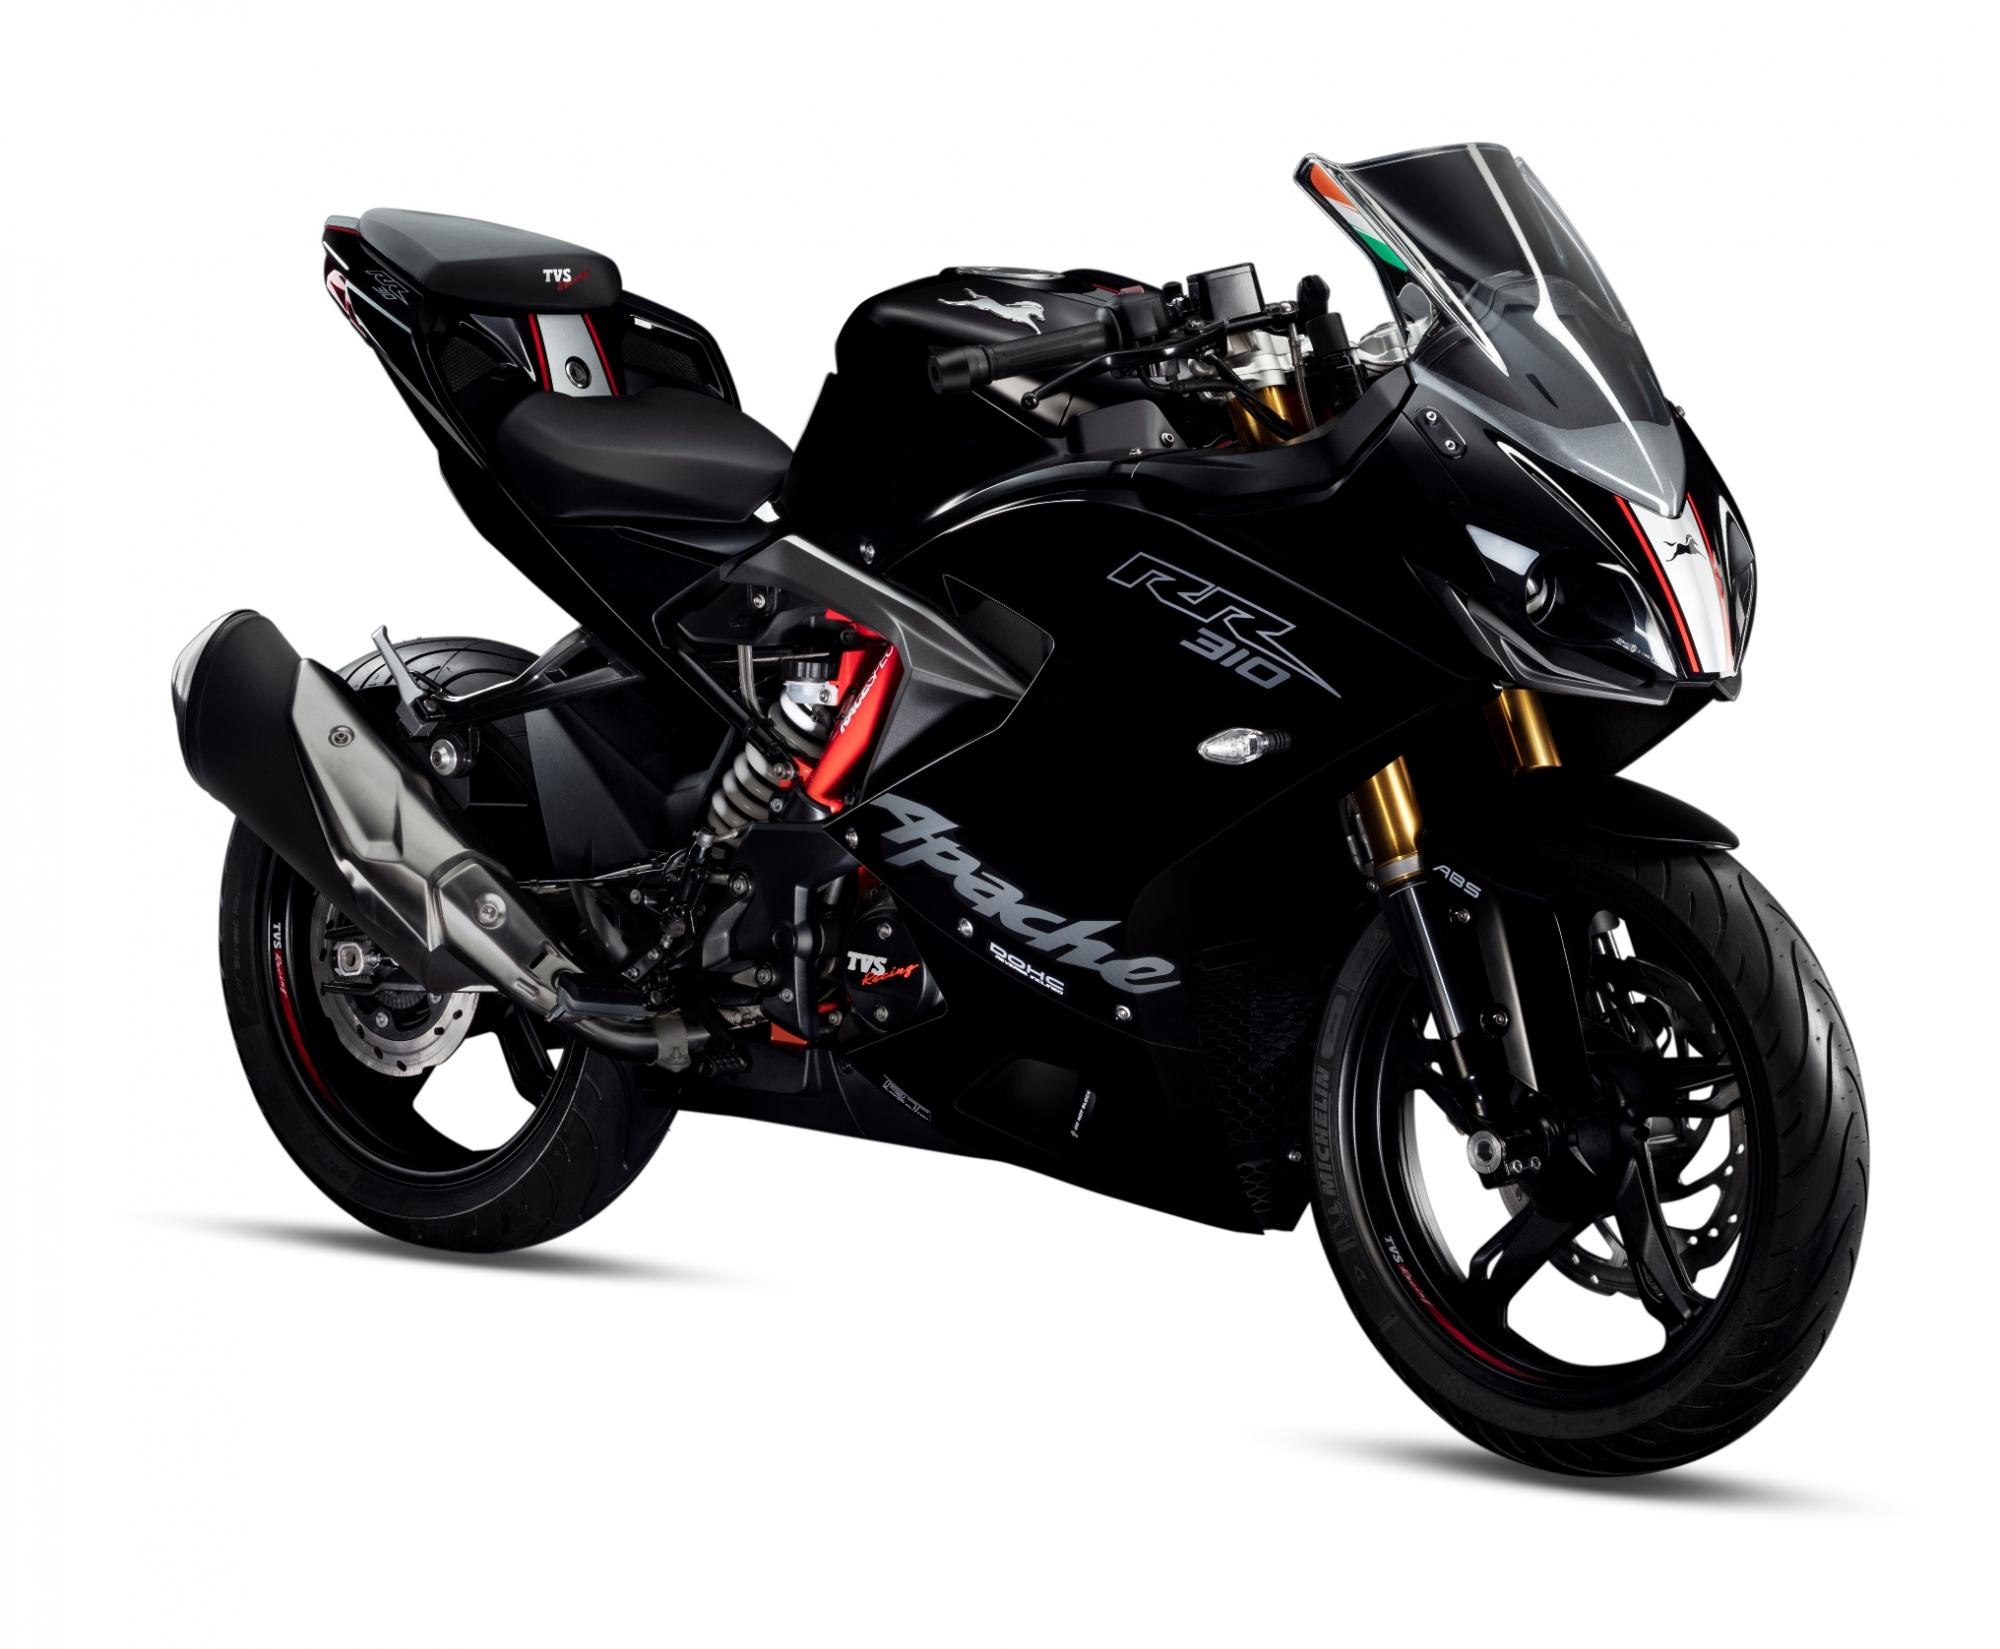 2019 Tvs Apache Rr 310 Launched With Slipper Clutch